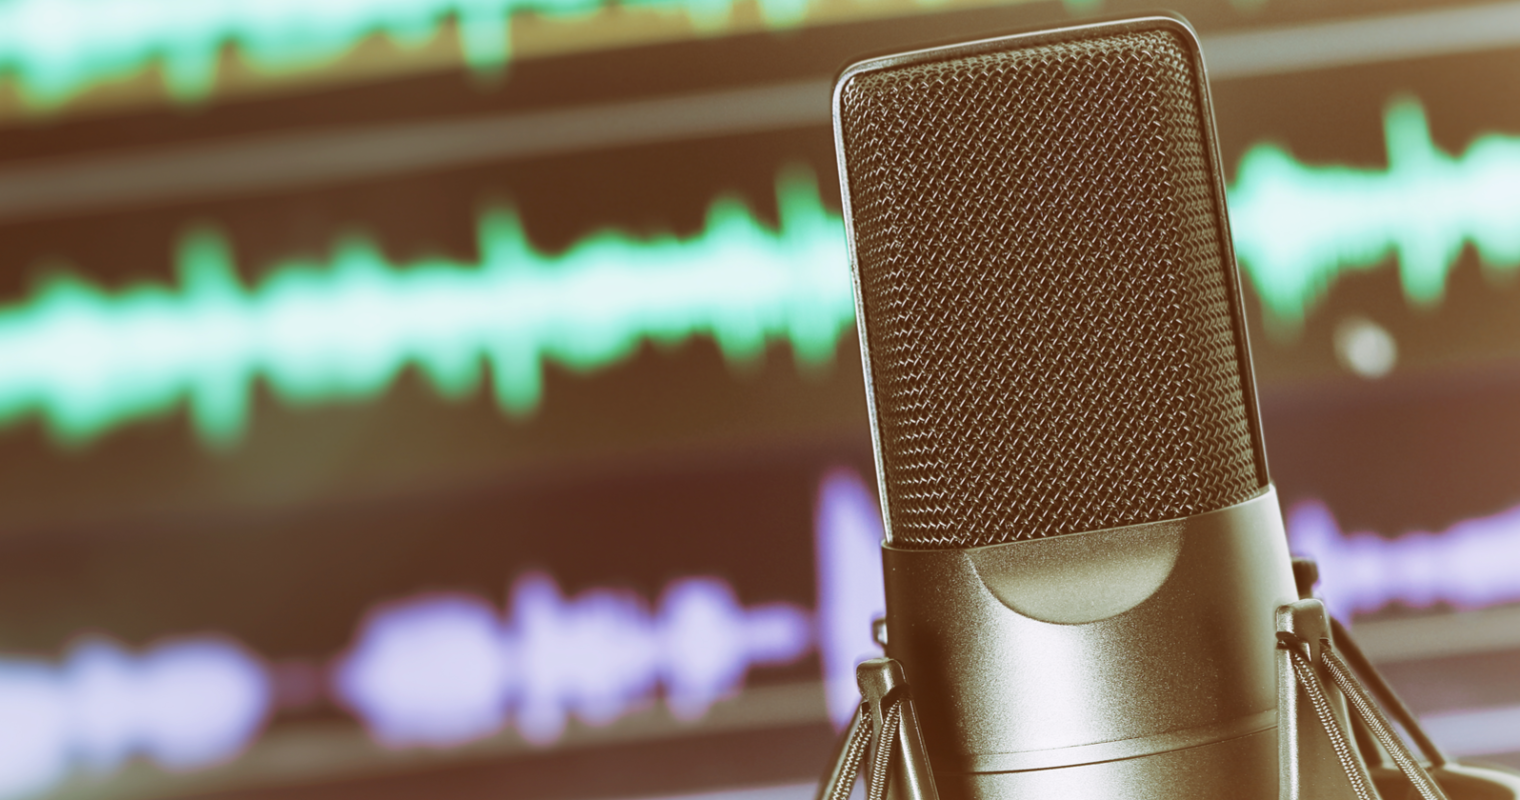 Google Makes Podcasts Searchable by Automatically Transcribing Them